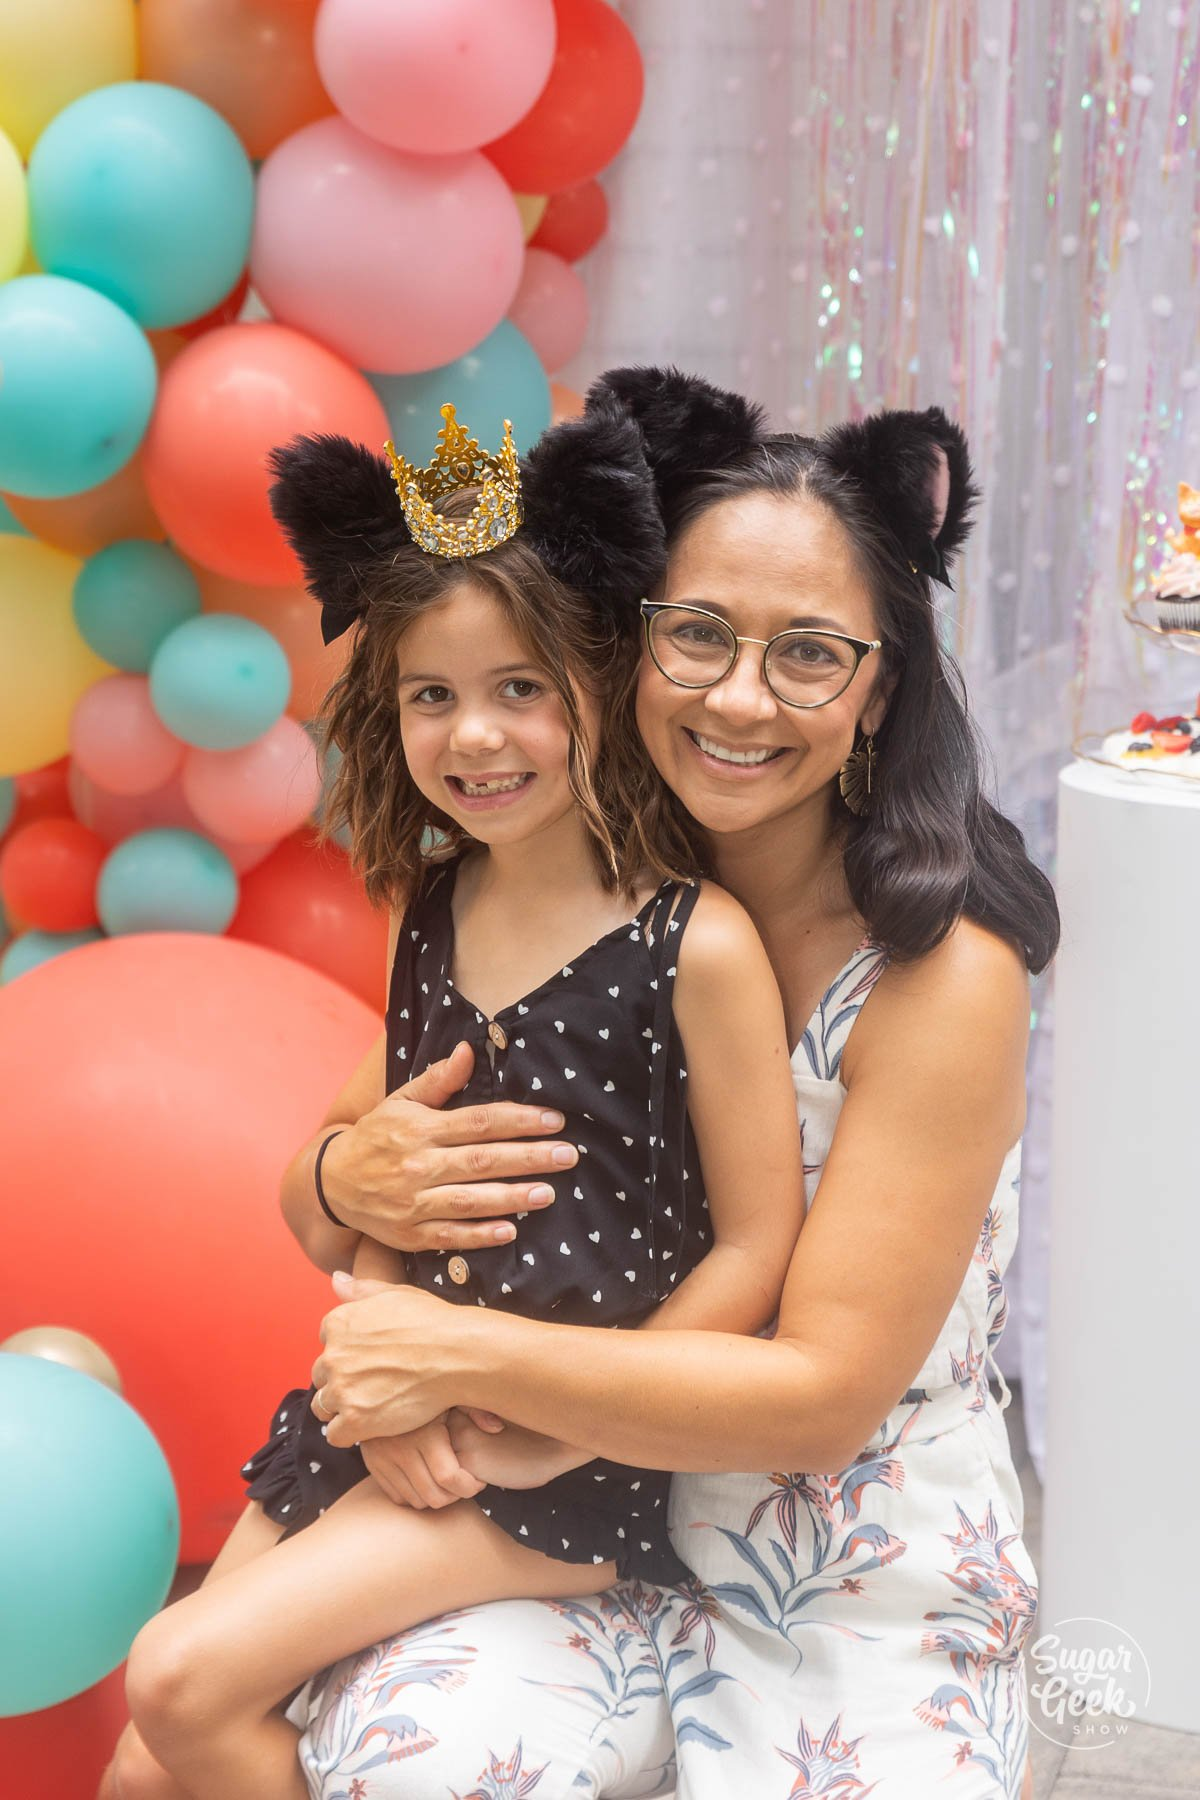 mom and daughter posing in cat ear headbands in front of balloons